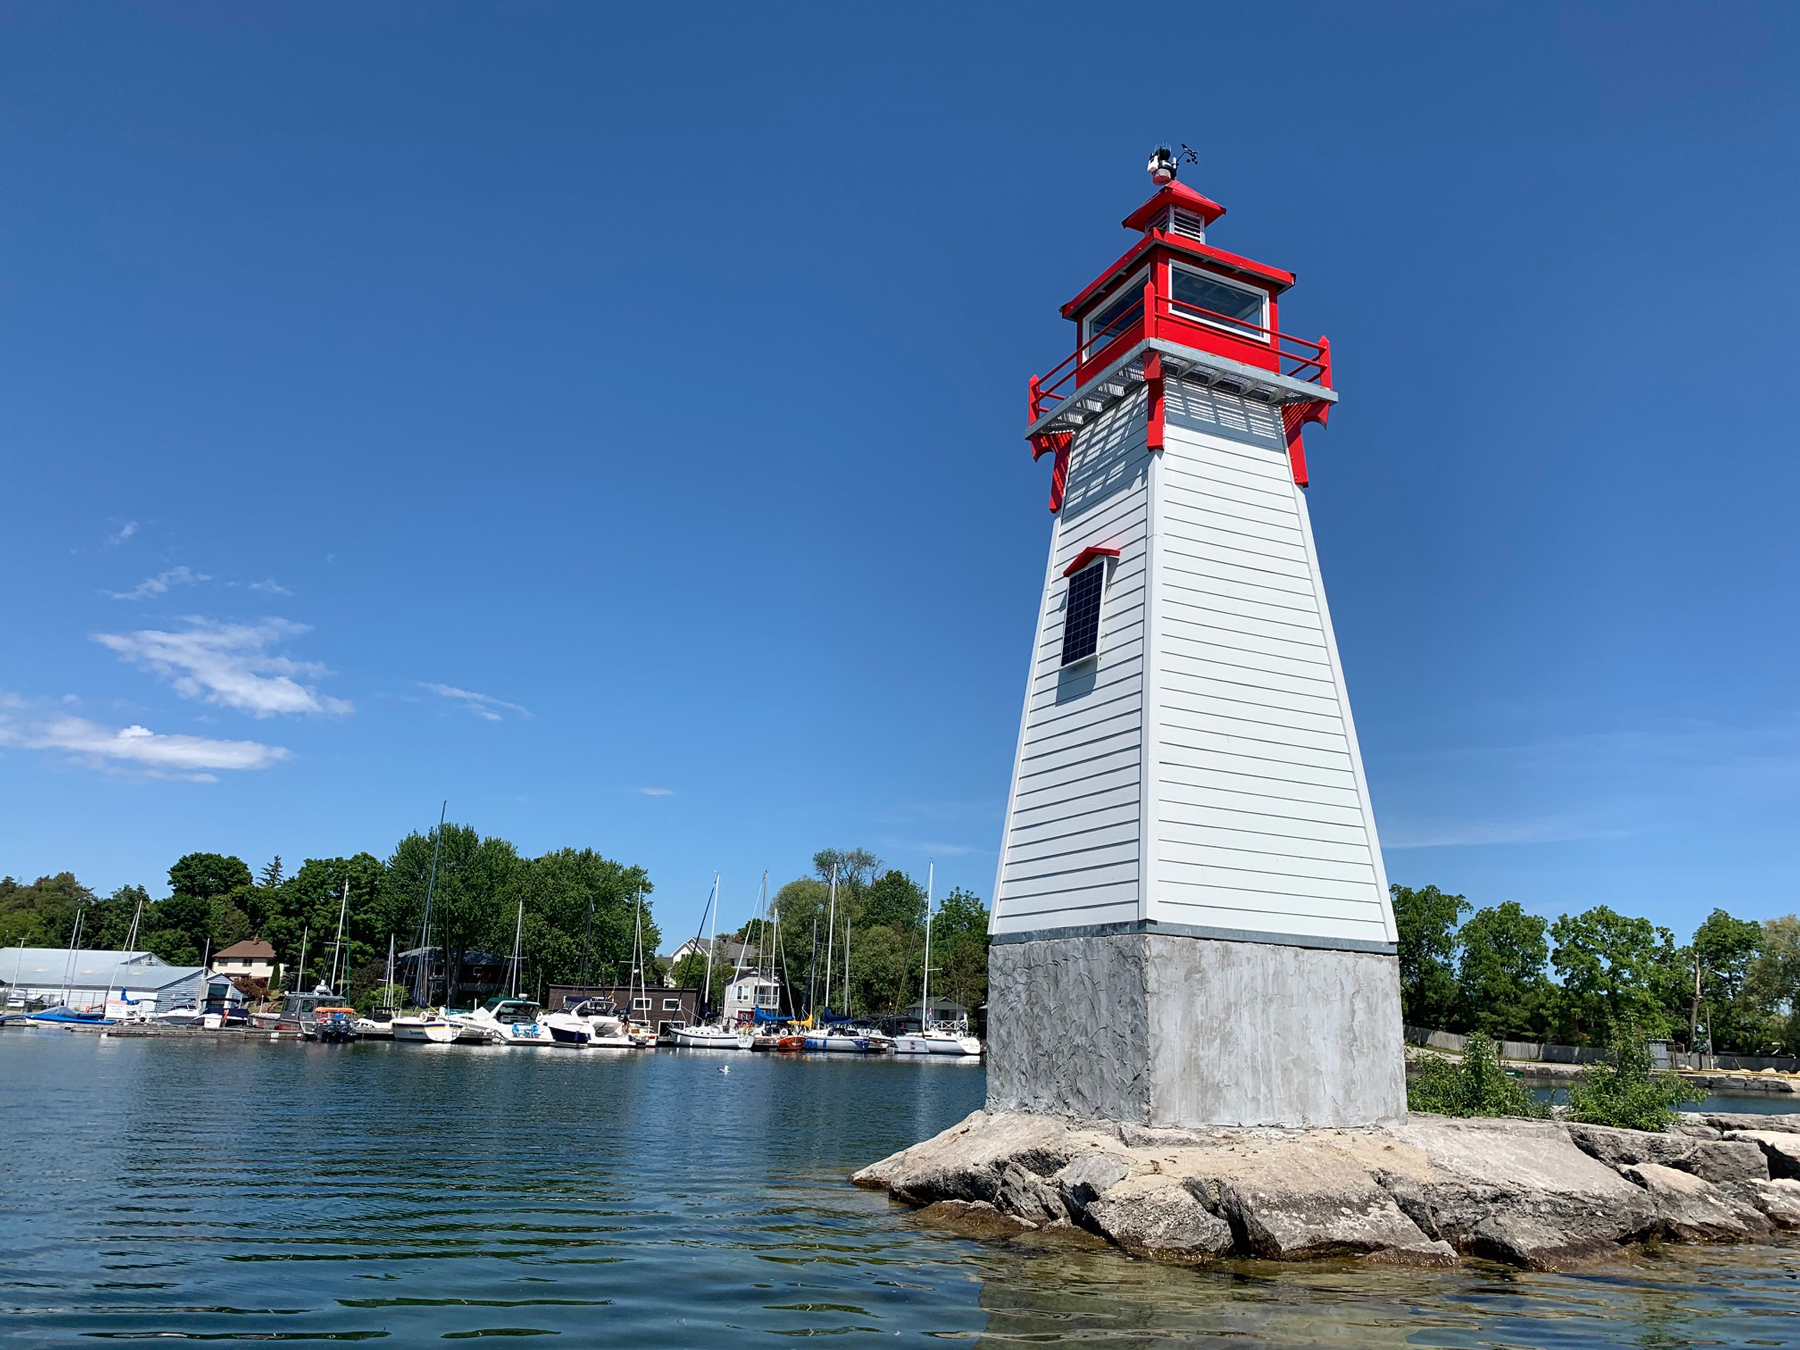 things to see and do in Georgina Ontario